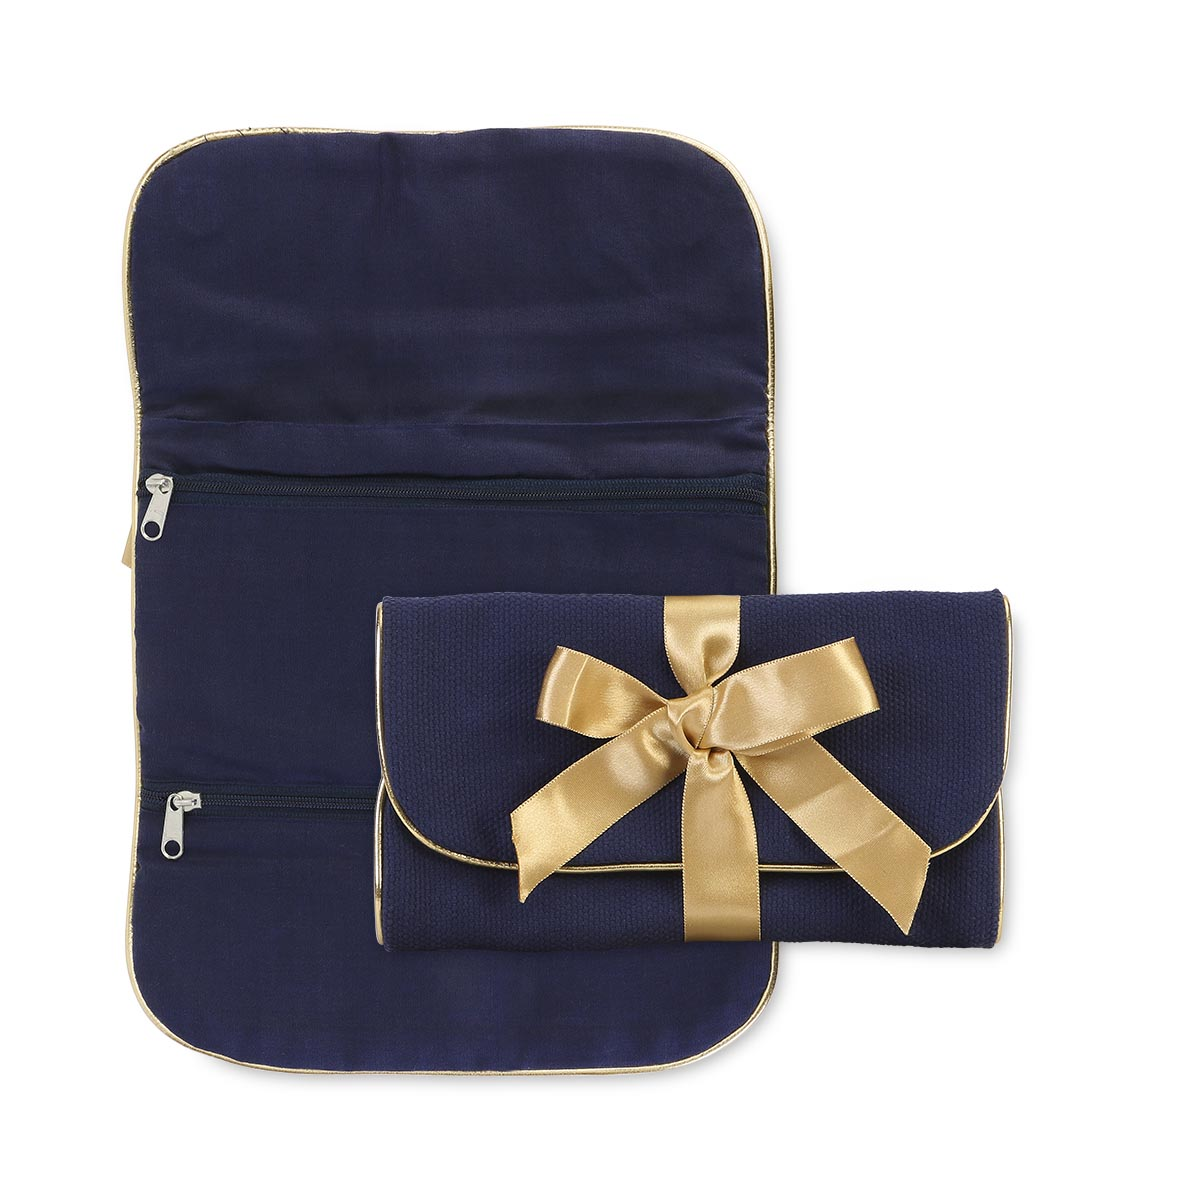 durry jewelry roll navy, gold trim